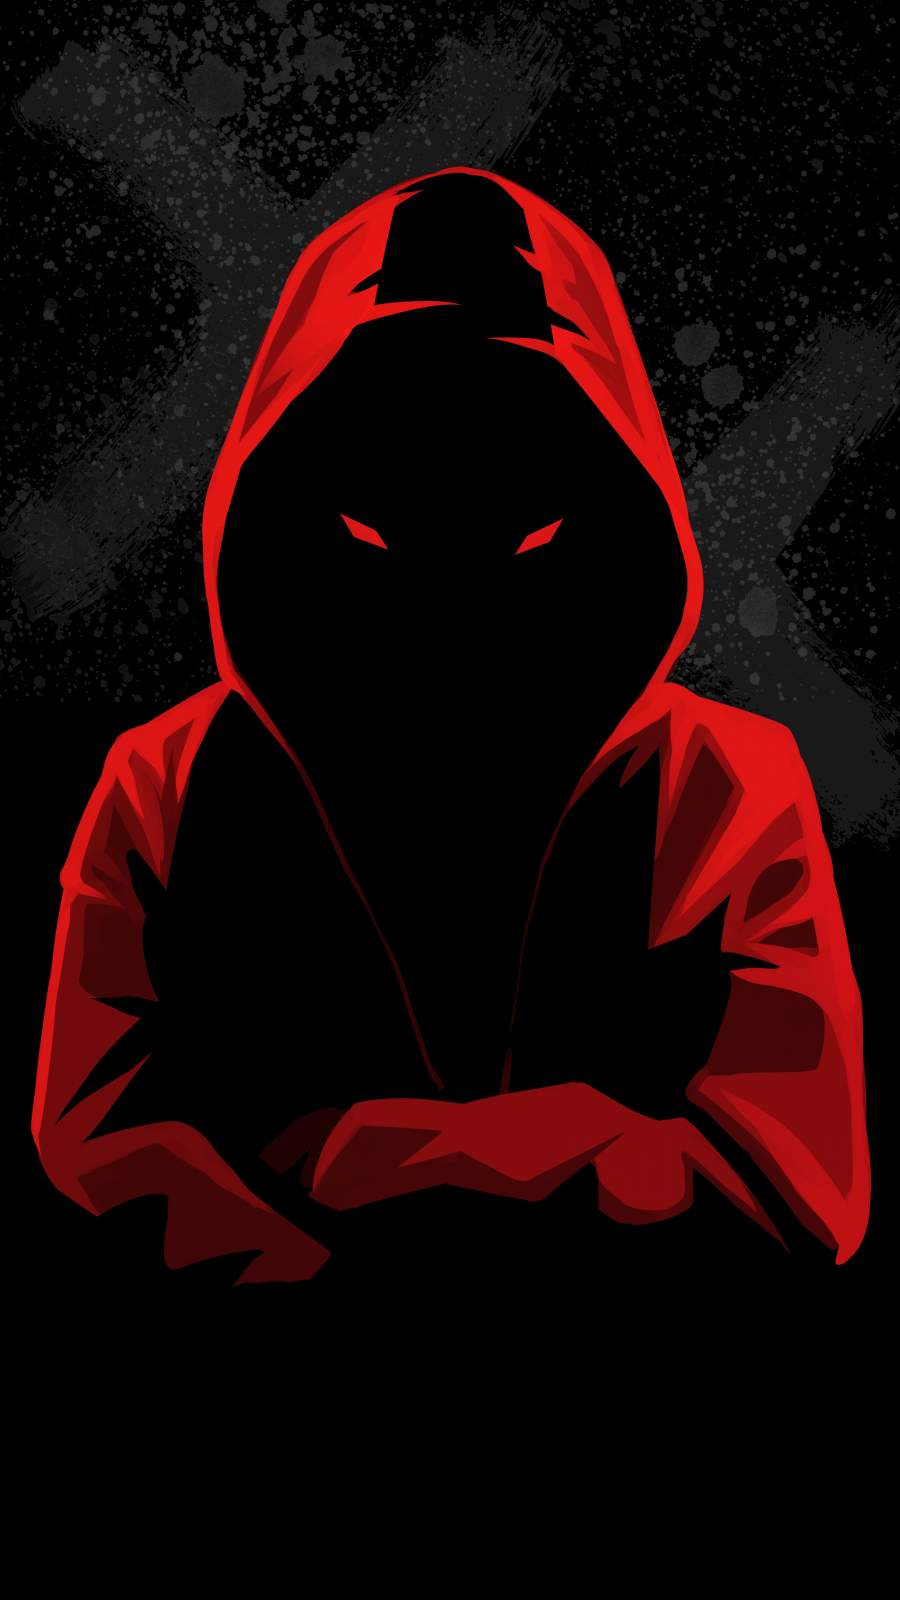 Dark Hoodie Person iPhone Wallpaper